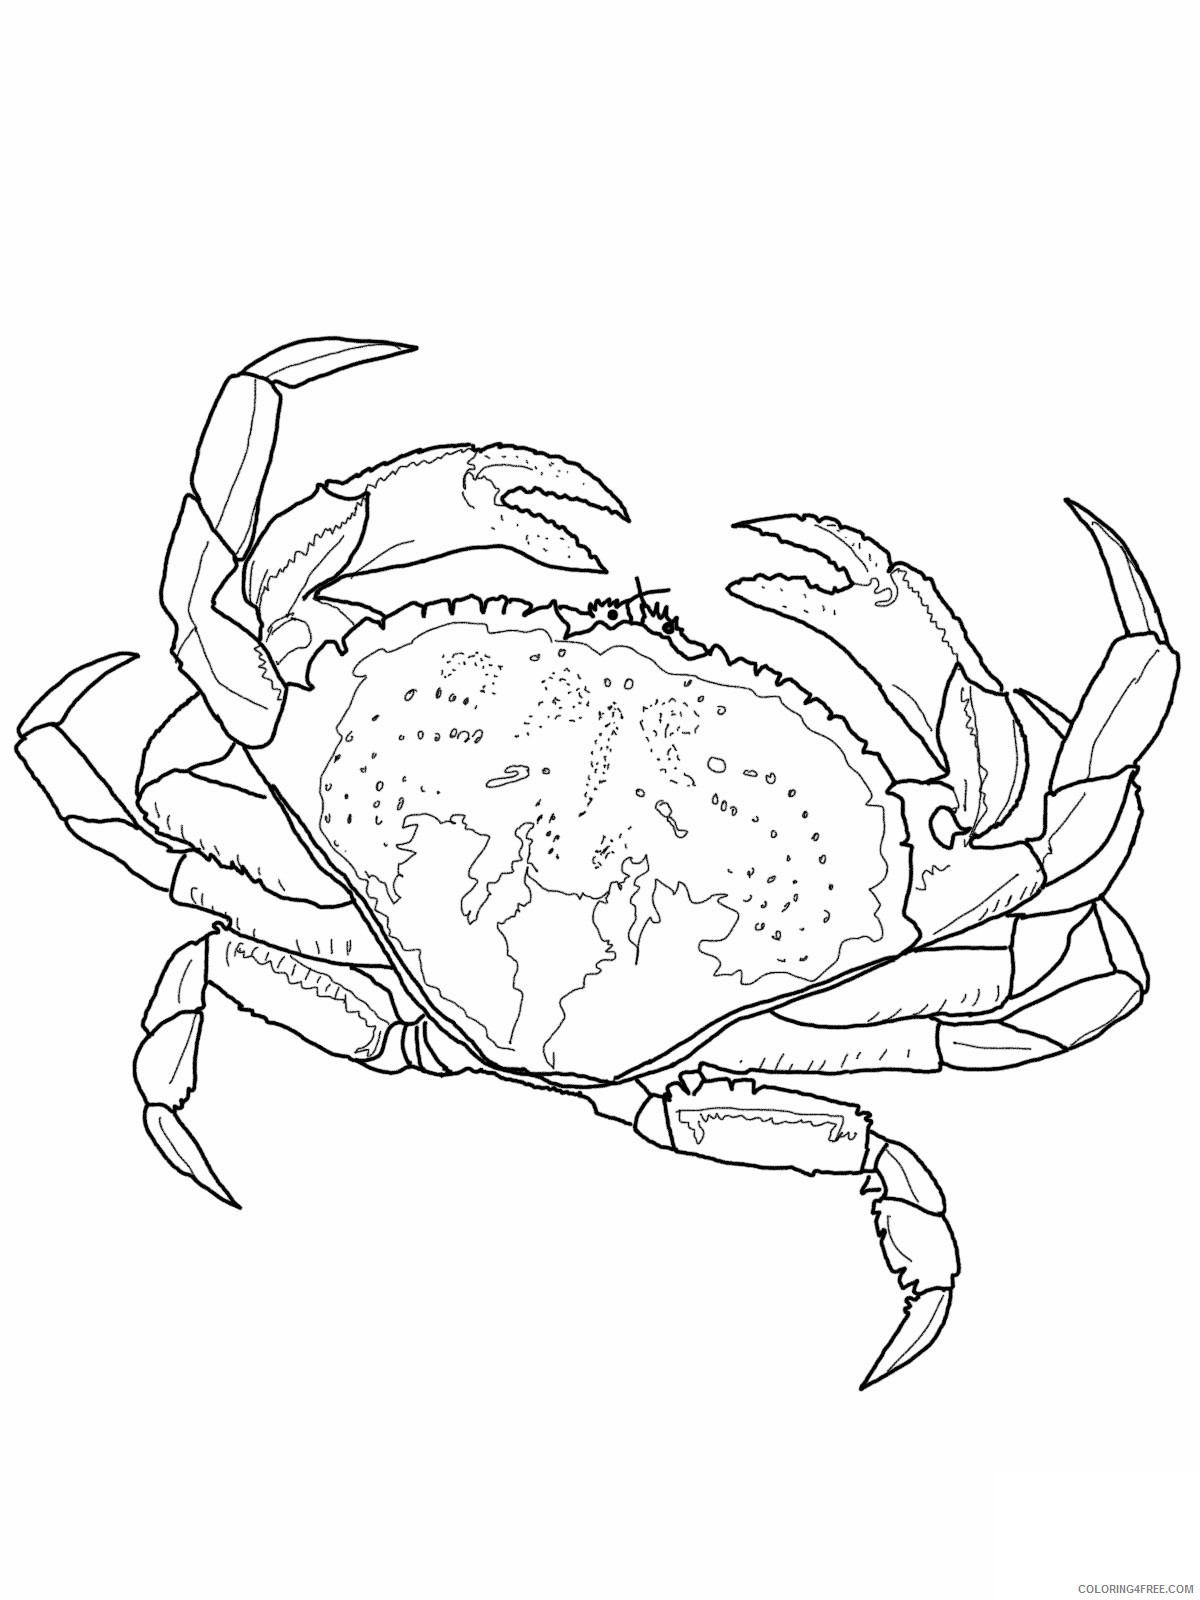 realistic crab coloring pages Coloring4free